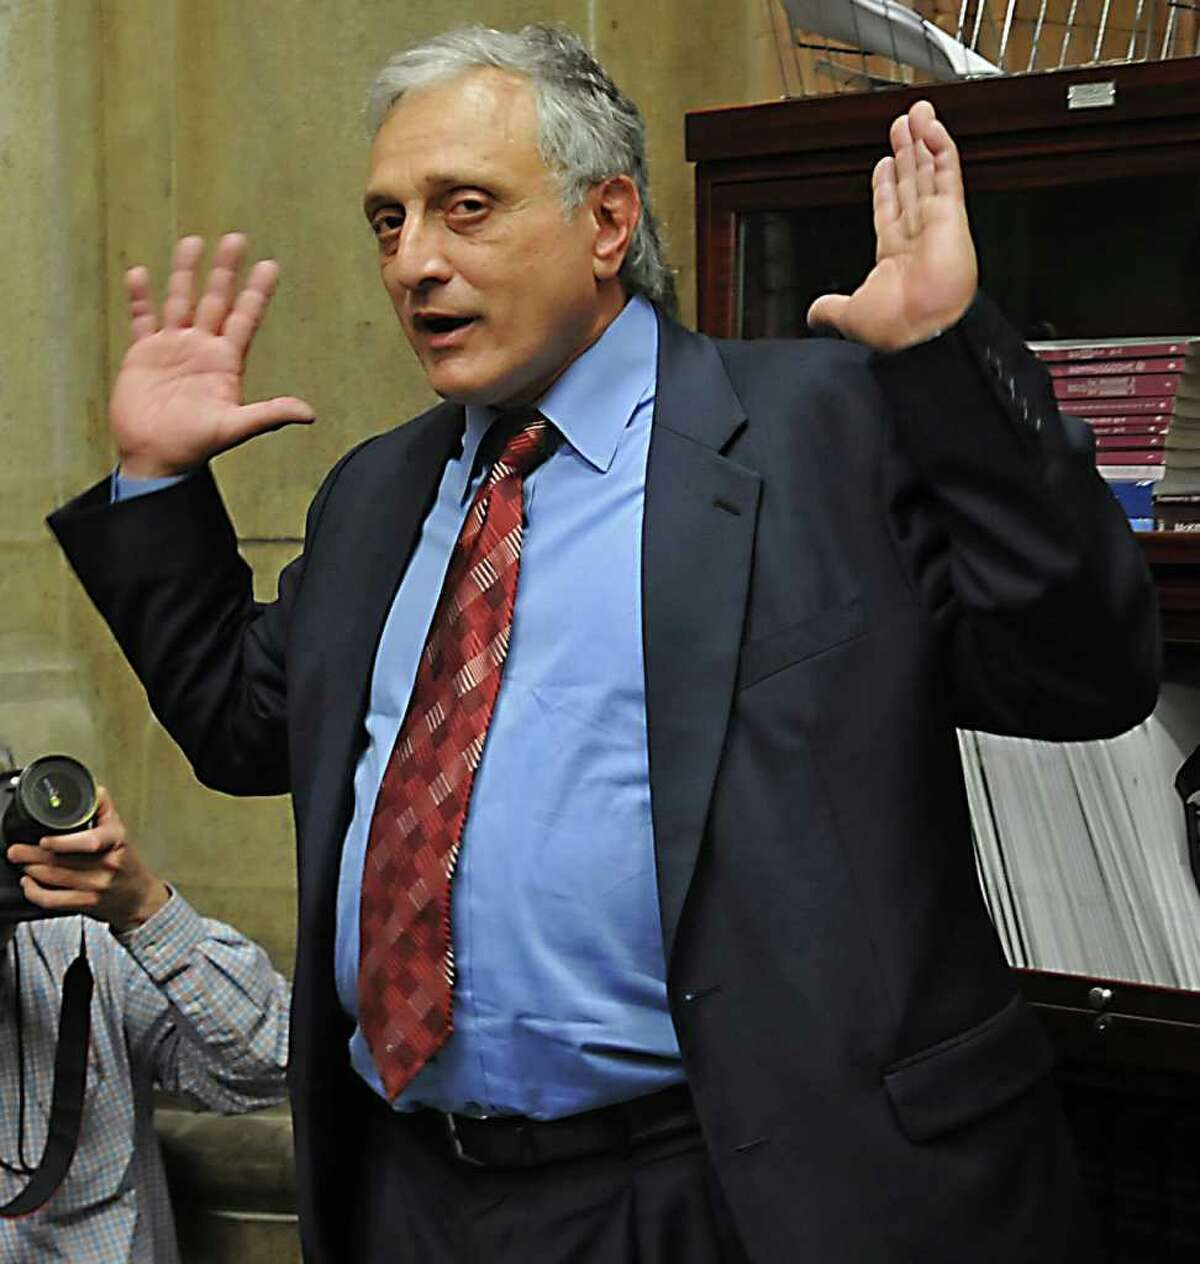 Gubernatorial candidate Carl Paladino speaks to the press in the Capitol in in Albany, NY on April 6, 2010. (Lori Van Buren / Times Union)